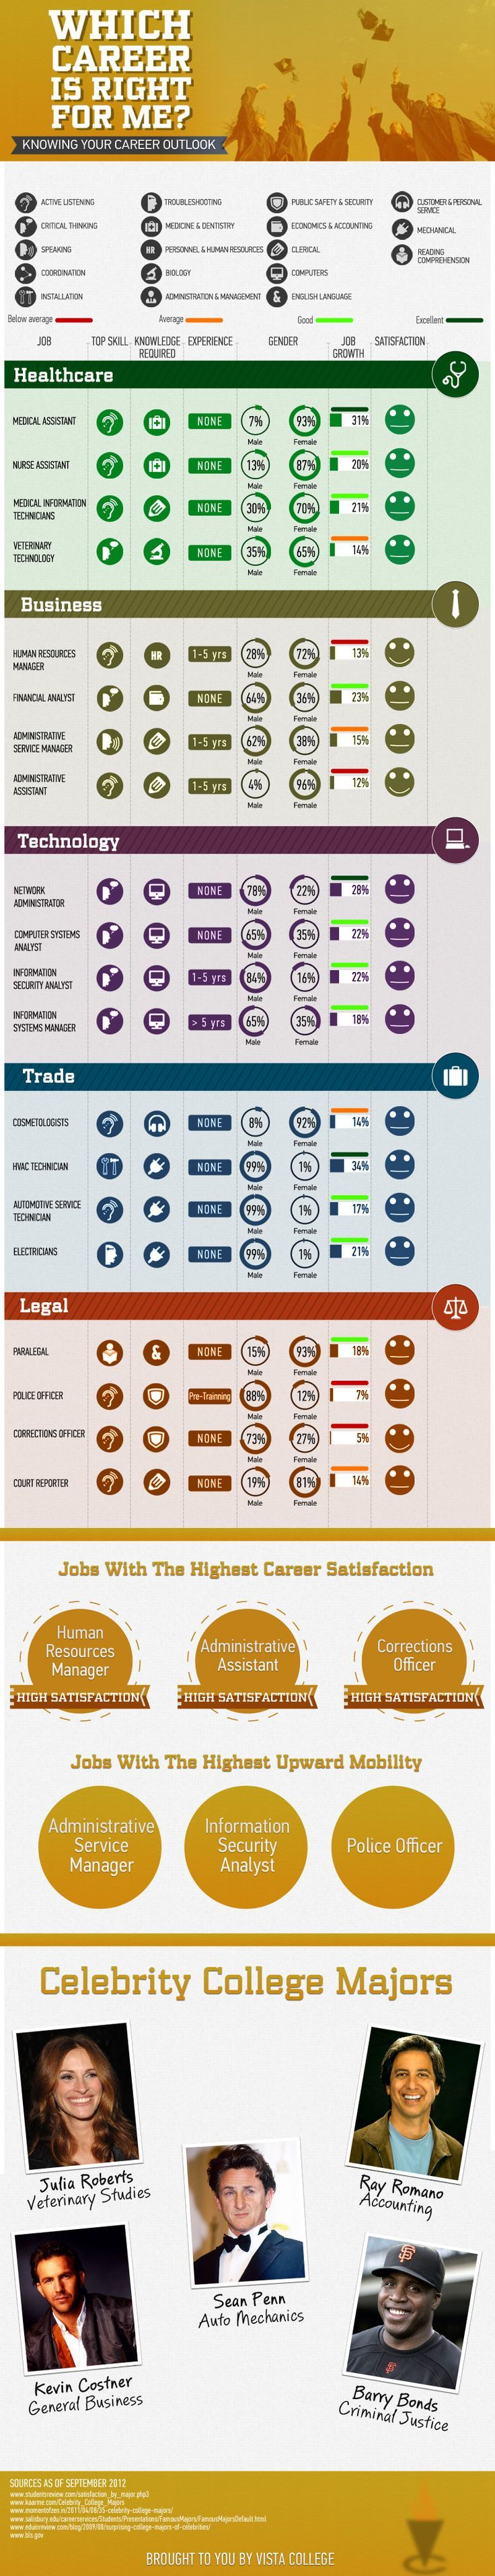 Which Career Might Be Right For Me [INFOGRAPHIC] by Vista College on @youtern